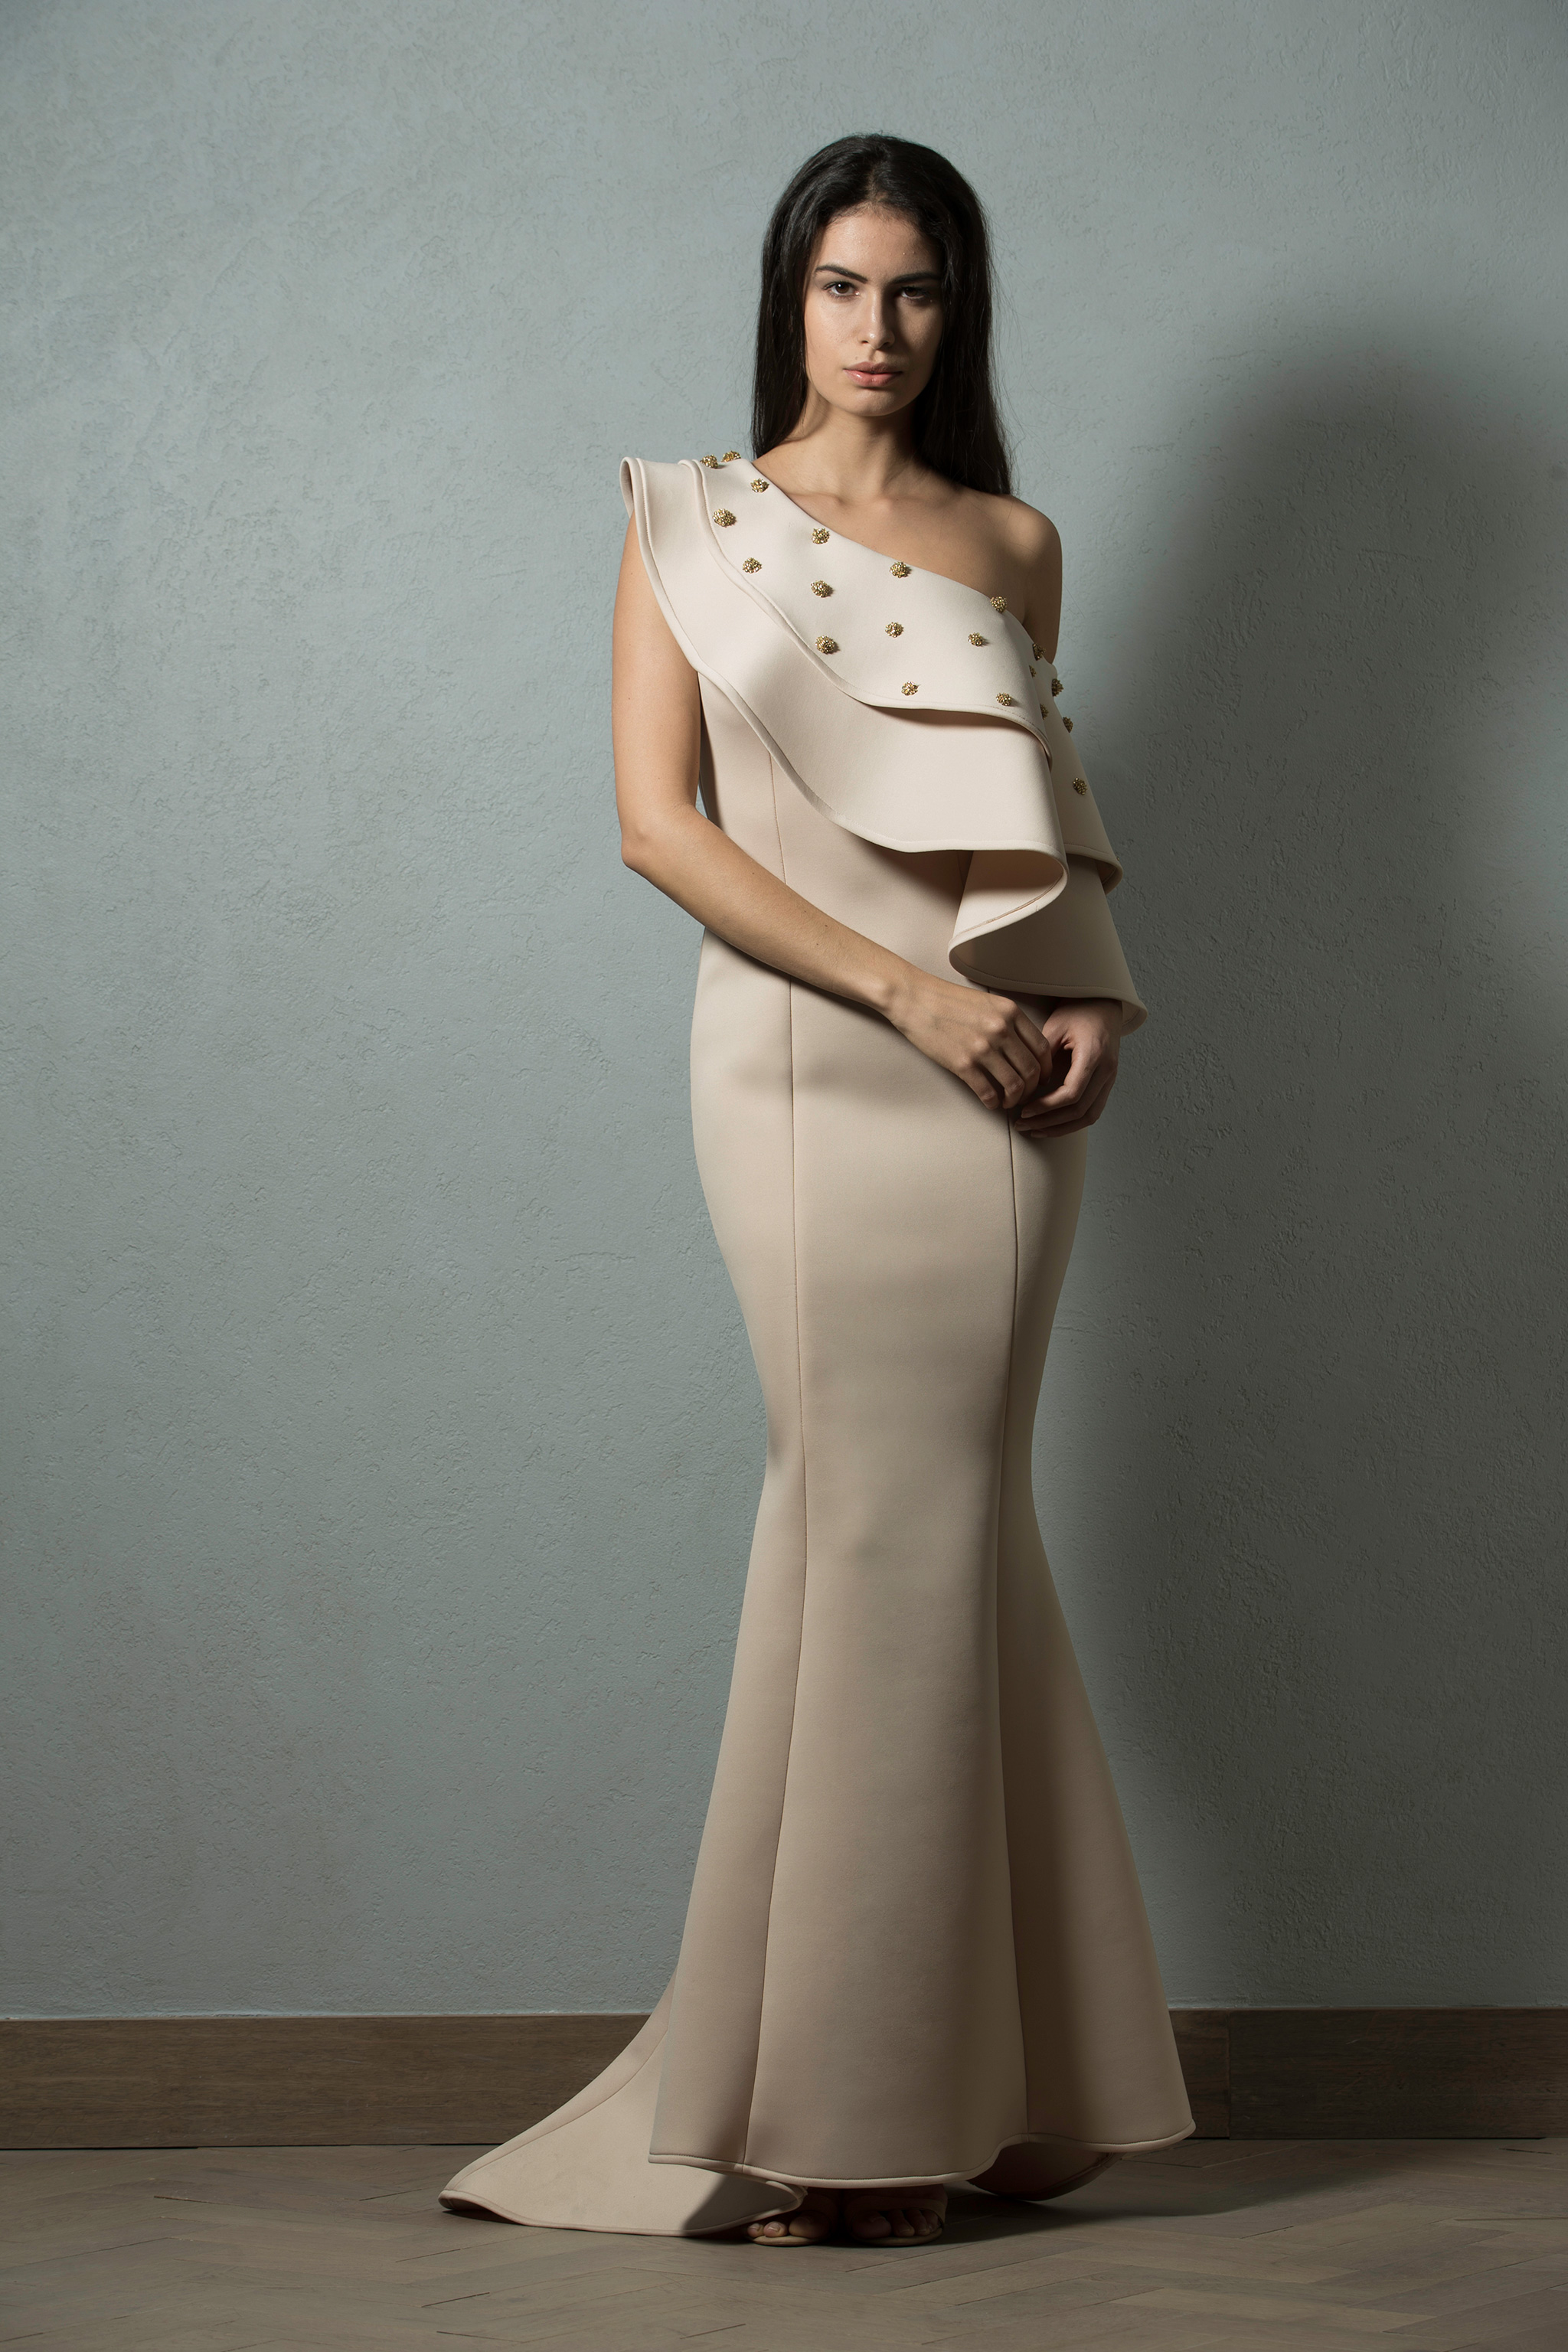 AAVVA Dress Series - The First Ever Resort Collection From AAVVA